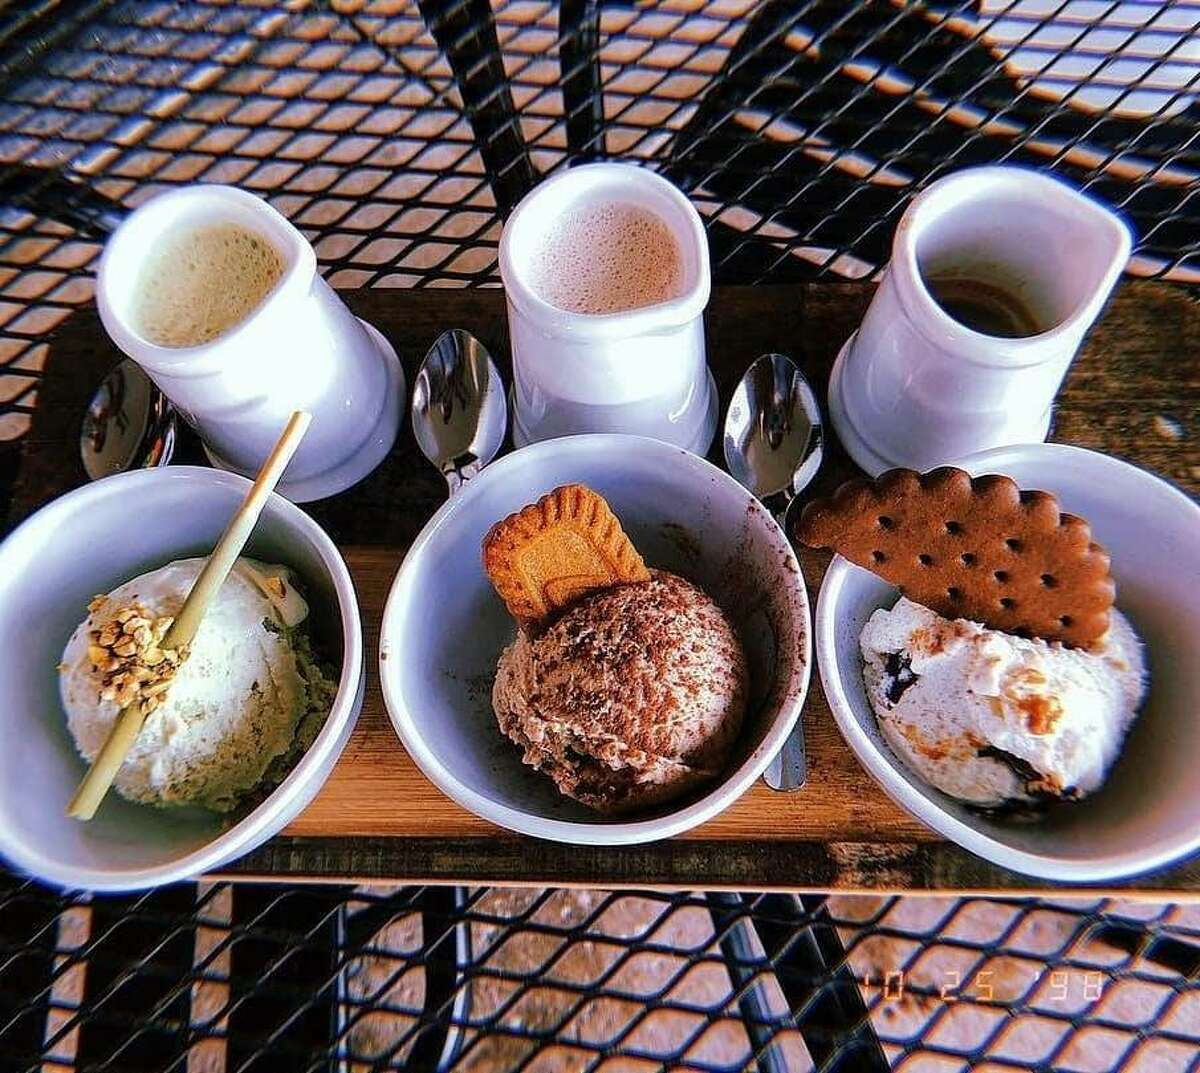 Paciugo San Antonio is offering three-cup affogato flights, with gelato and pour-over parings, topped with all the options a sweet tooth could dream of.